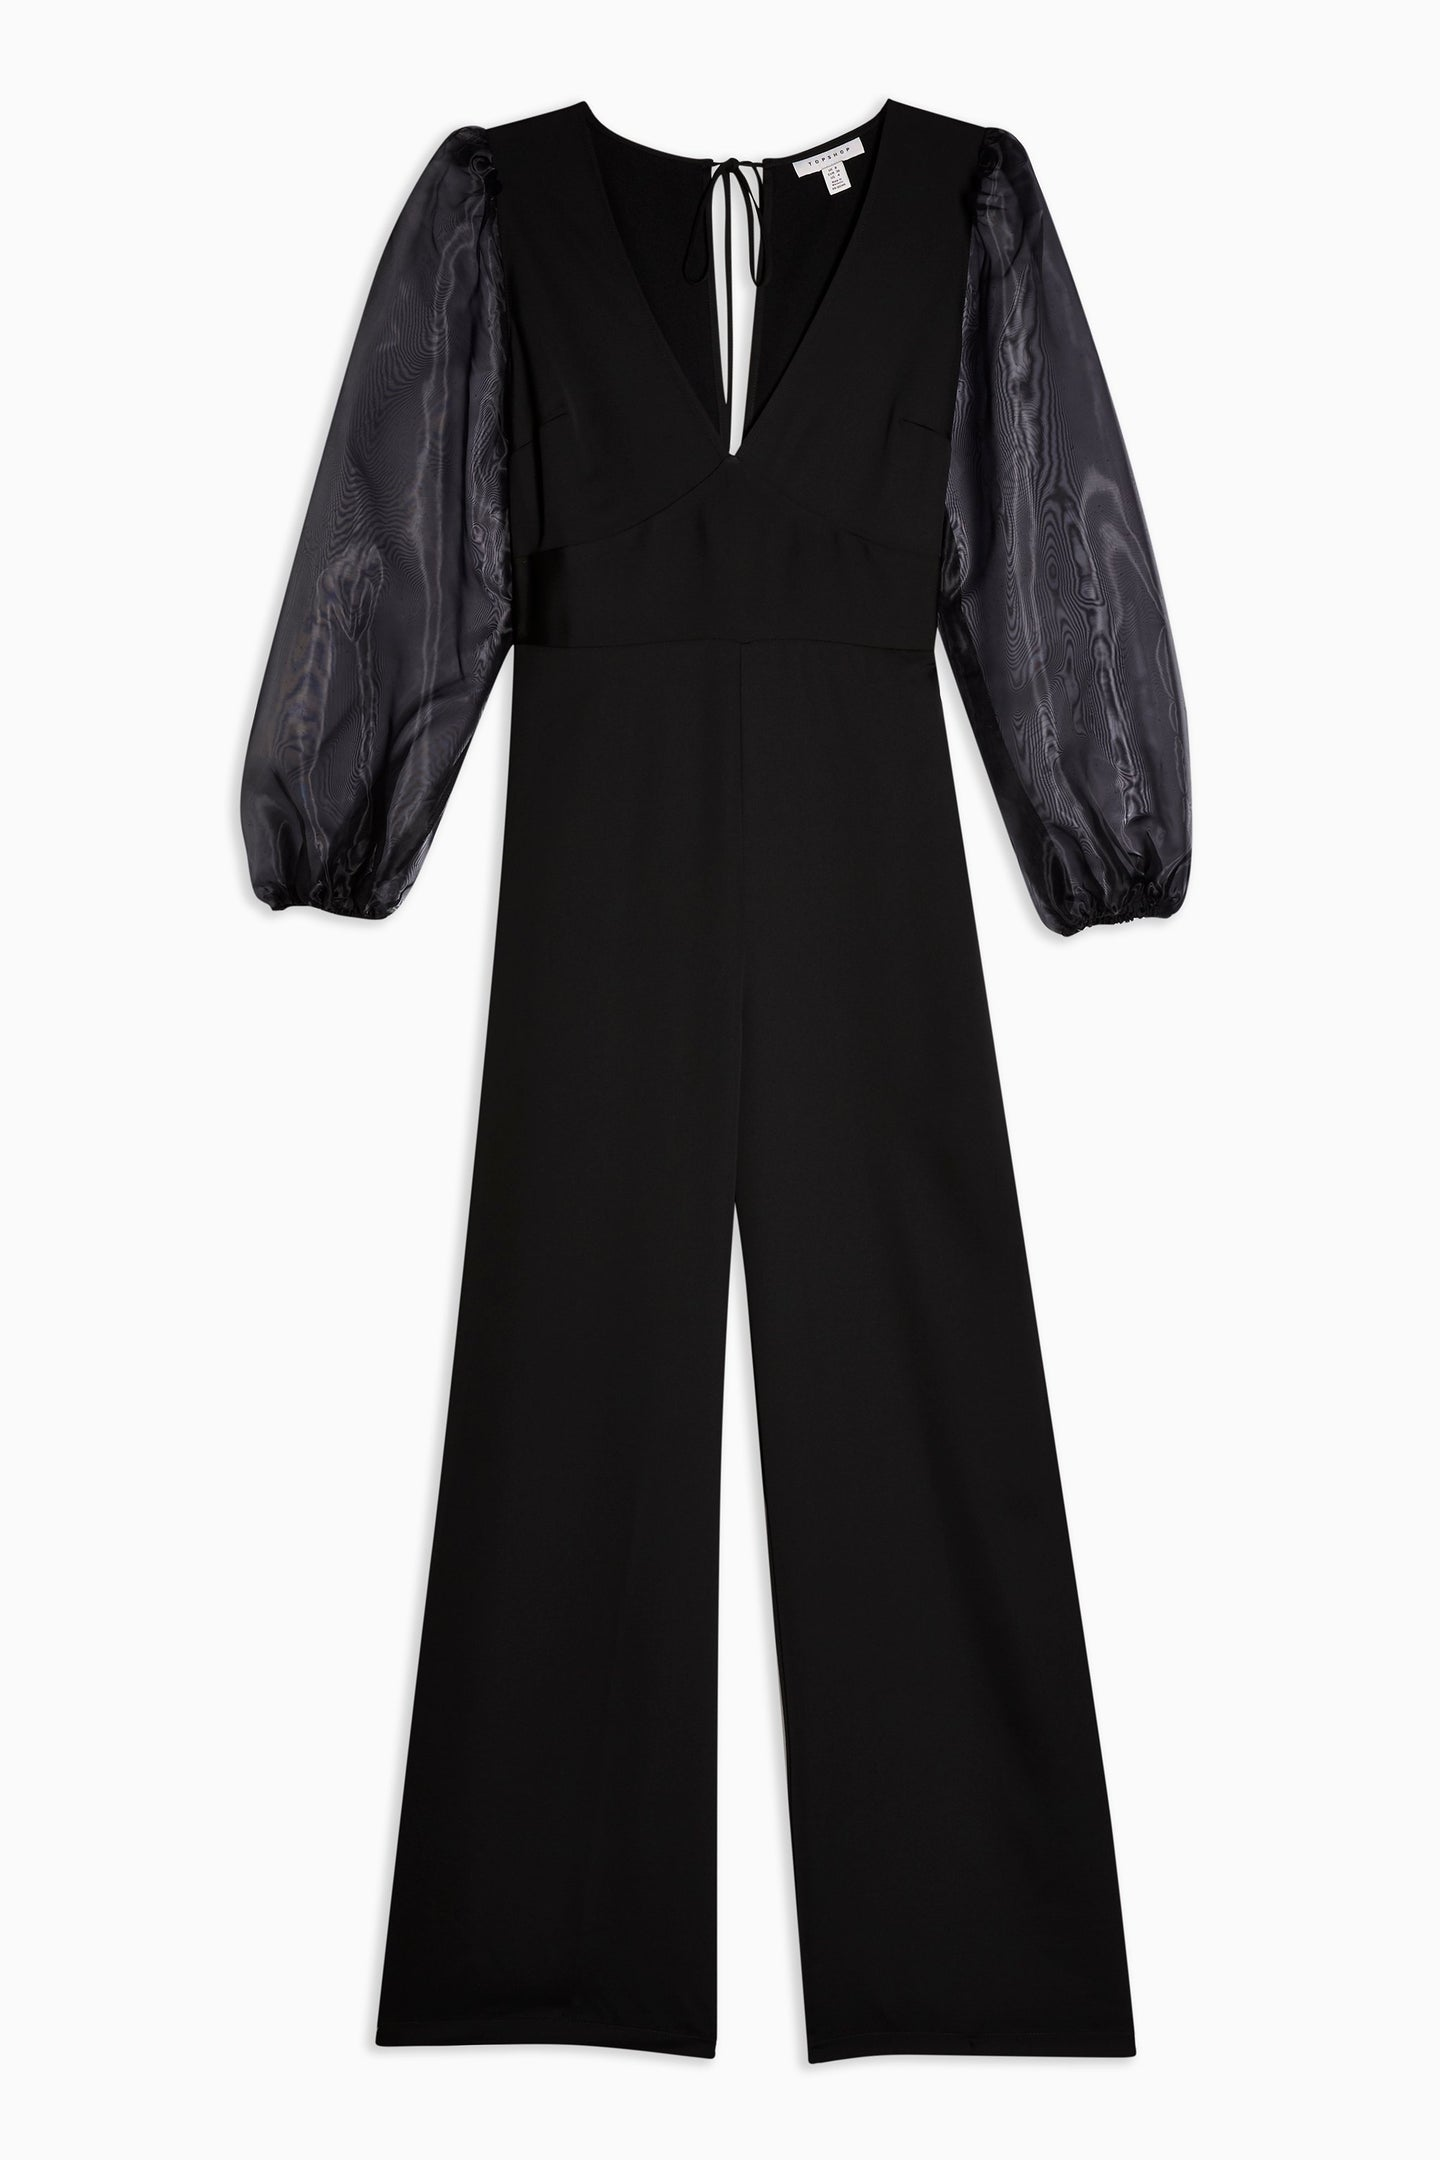 Top Shop Black Organza Jumpsuit